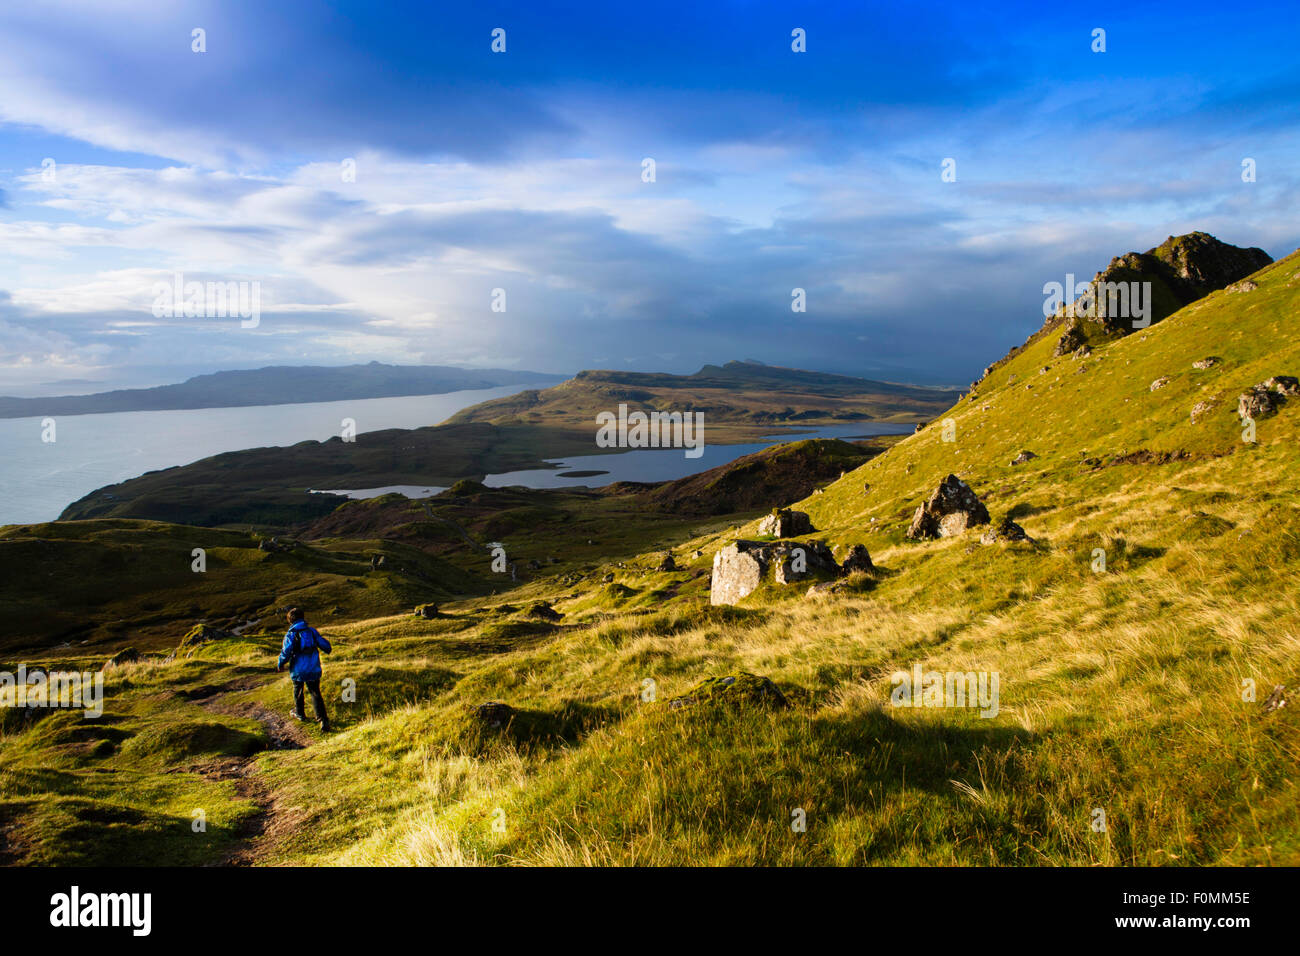 Scotland, Hebrides, Skye, a boy hiking on a on the Storr trail in Trotternish - Stock Image